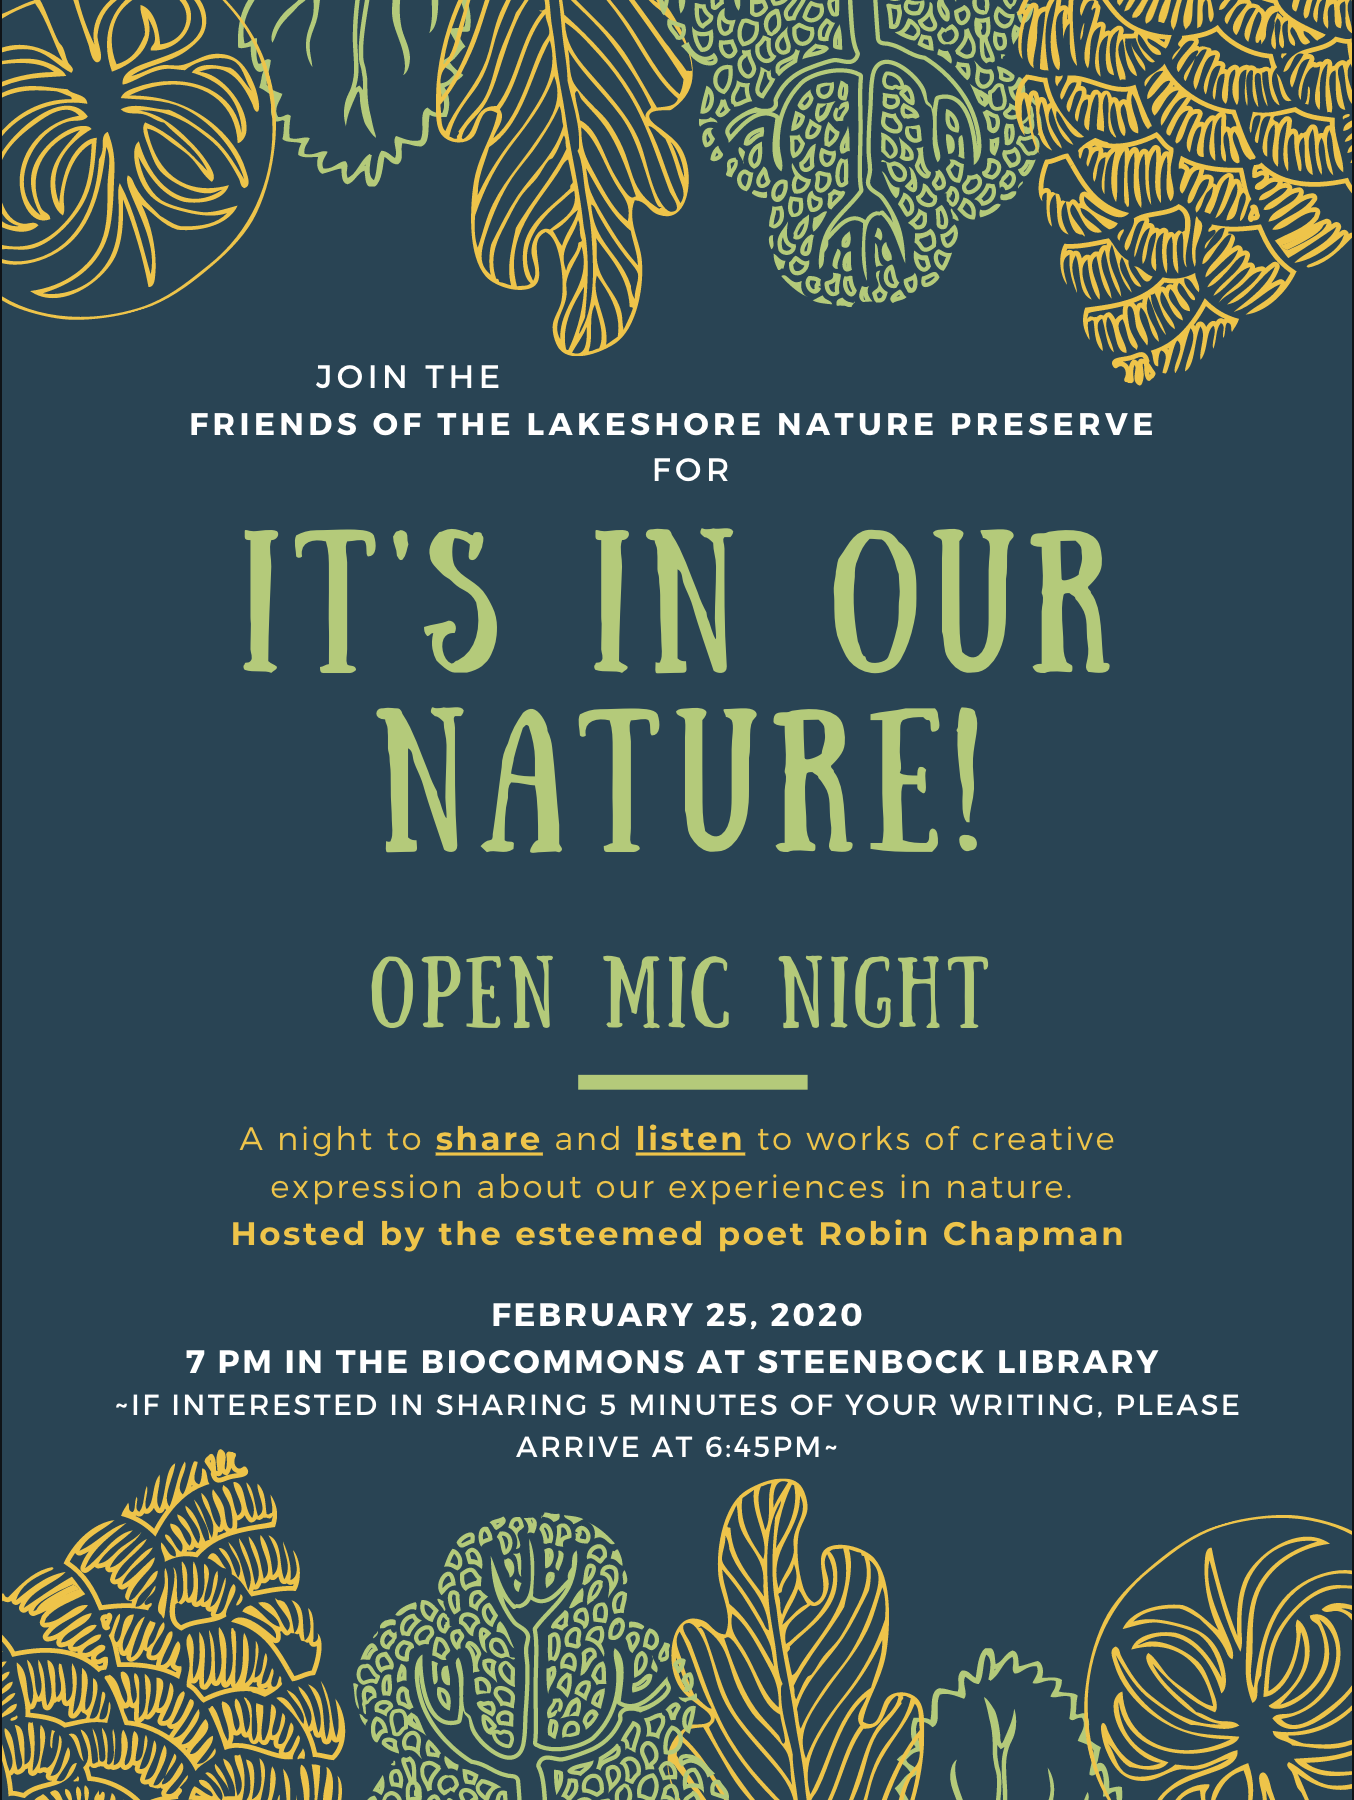 Open Mic Night, Feb. 25 at Biocommons at Steenbock Library